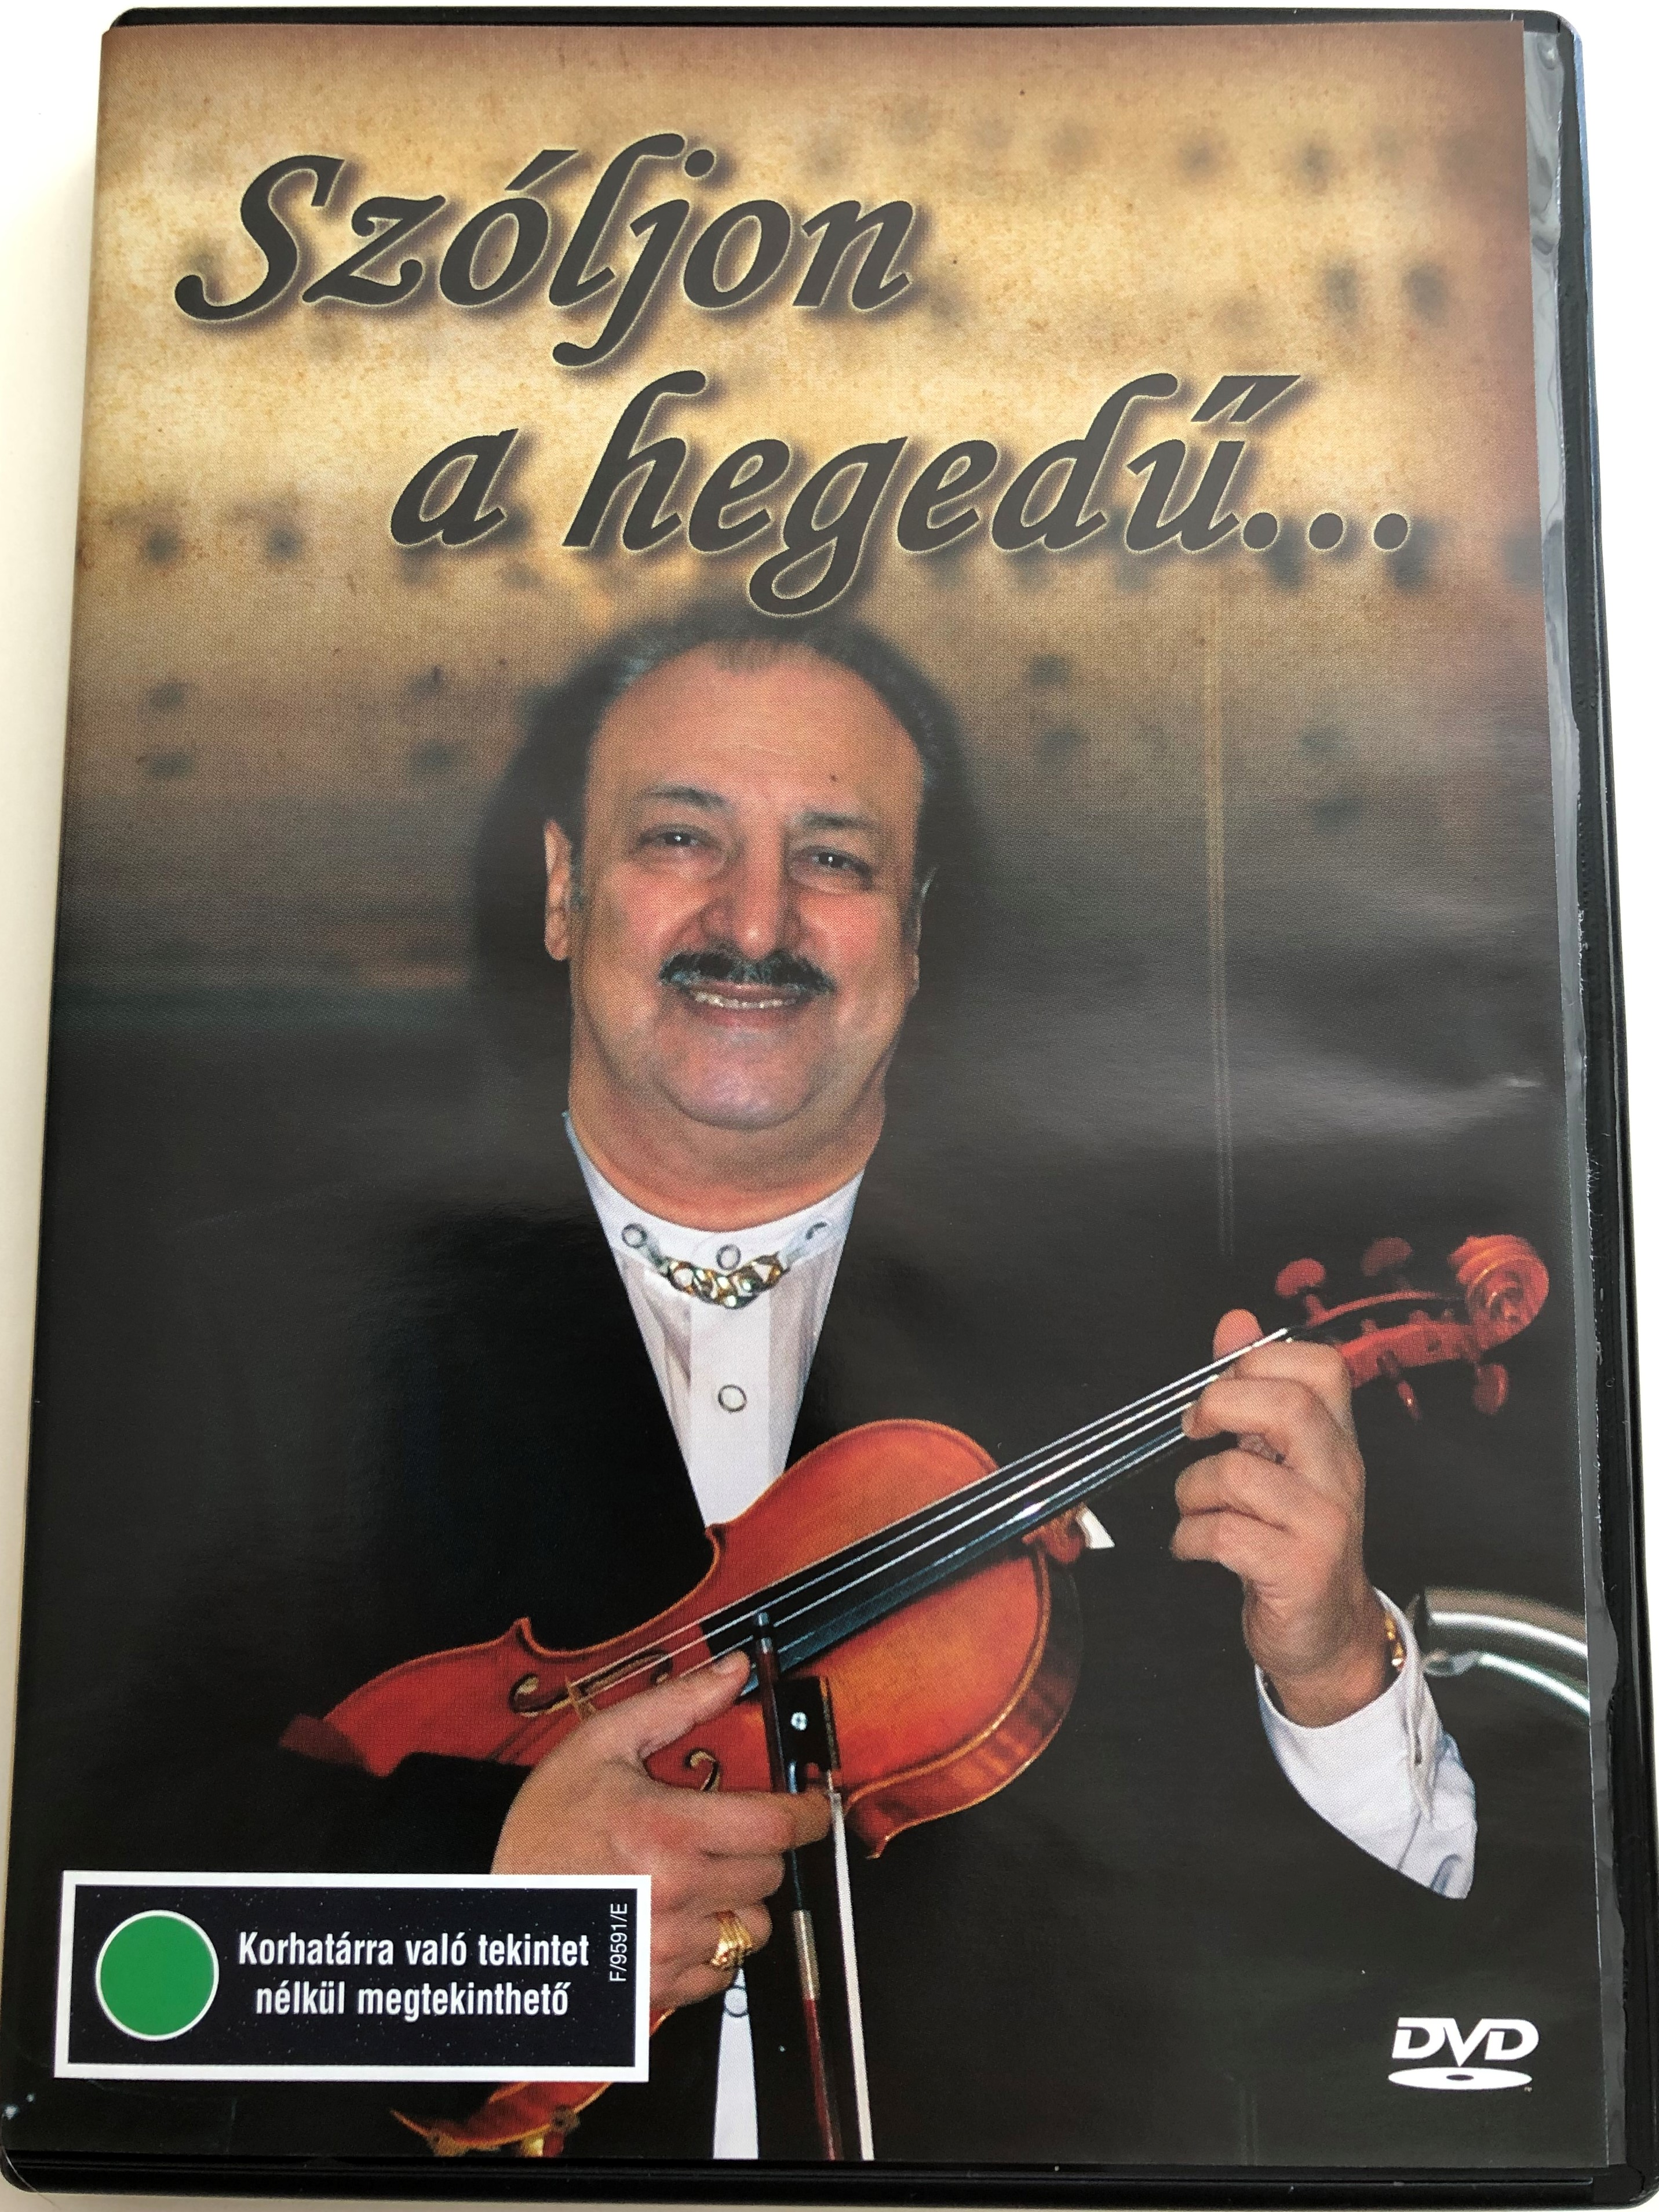 sz-ljon-a-heged-...-dvd-ifj.-s-nta-ferenc-hungarian-gypsy-orchestra-conducted-by-szenthelyi-mikl-s-m-k-p-mtv-compilated-by-nemlaha-gy-rgy-1-.jpg